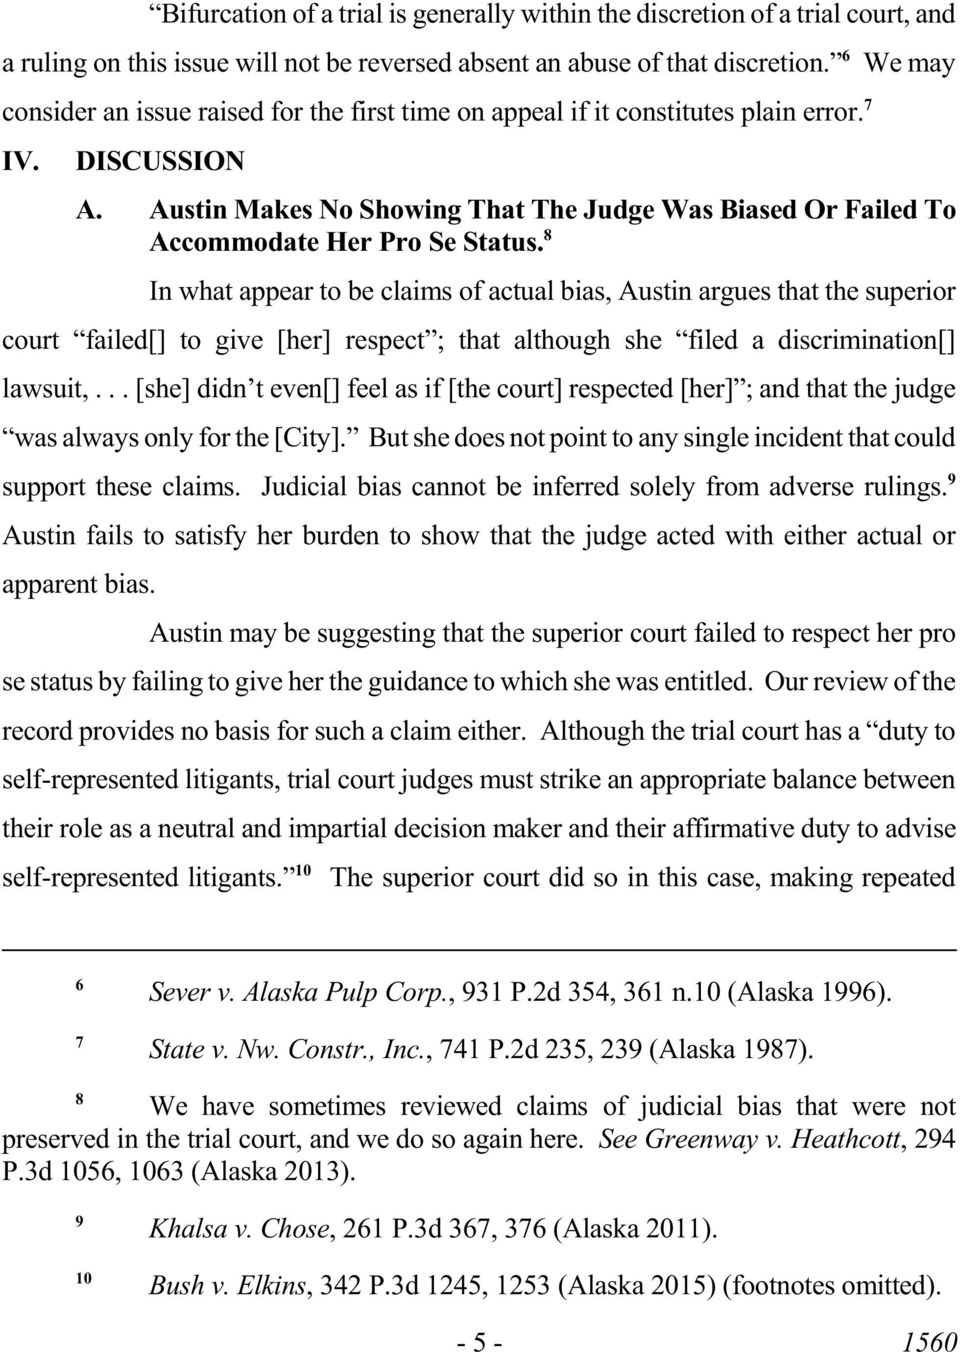 Austin Makes No Showing That The Judge Was Biased Or Failed To Accommodate Her Pro Se Status.